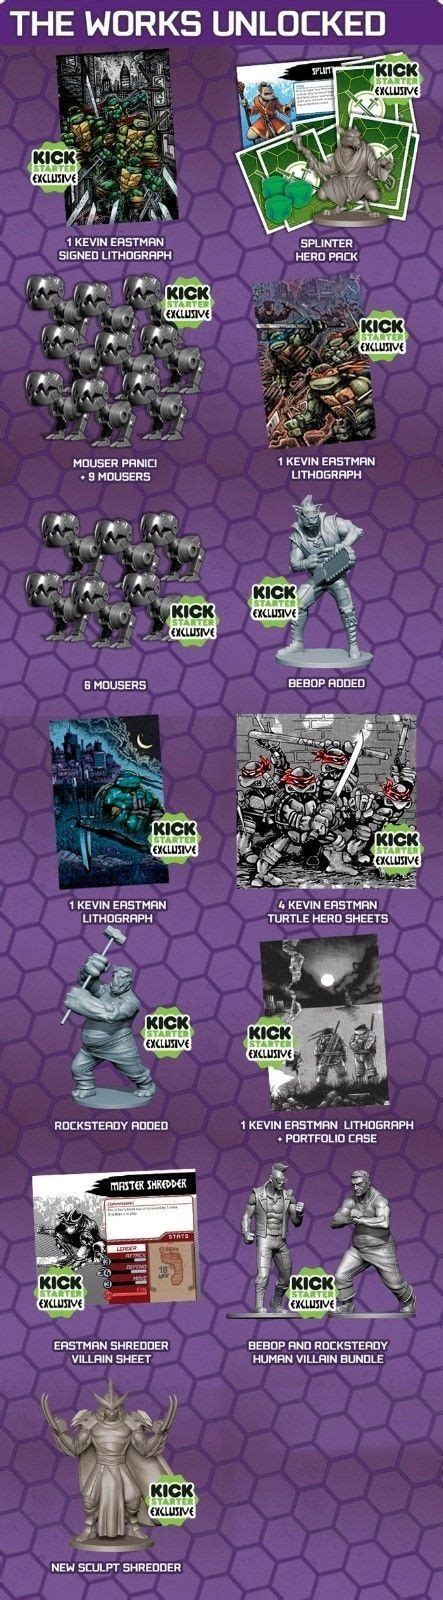 Tmnt Shadow Of The Past Boardgame mutant turtles shadows of the past